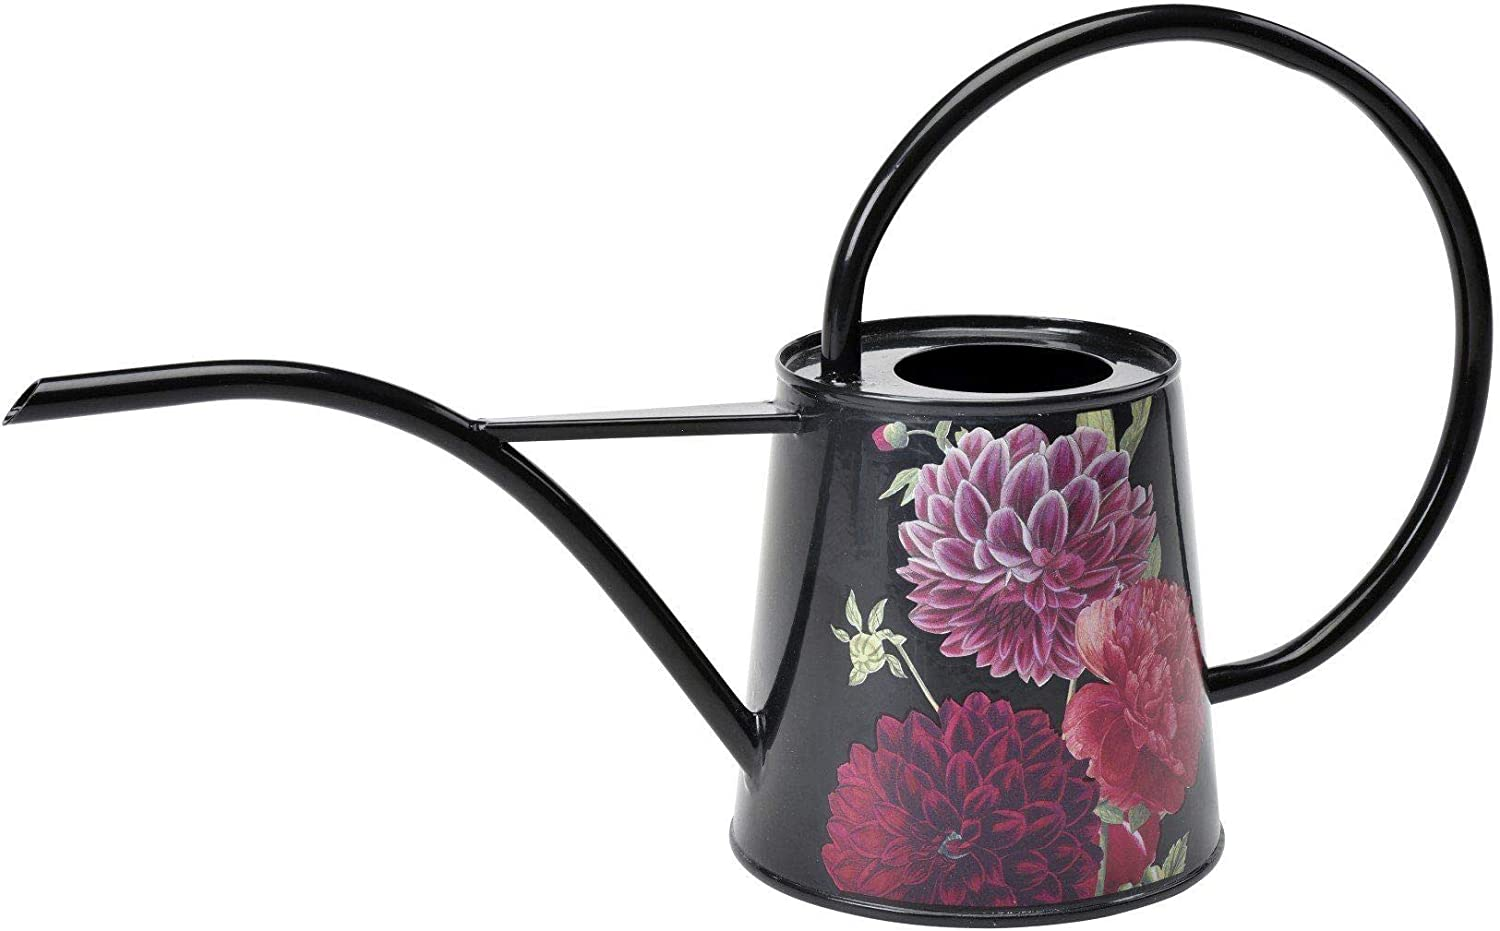 Burgon & Ball Indoor Watering Can in 34 Floz Lightweight in British Bloom Design | Long Reach Watering Can Peonies & Dahlias